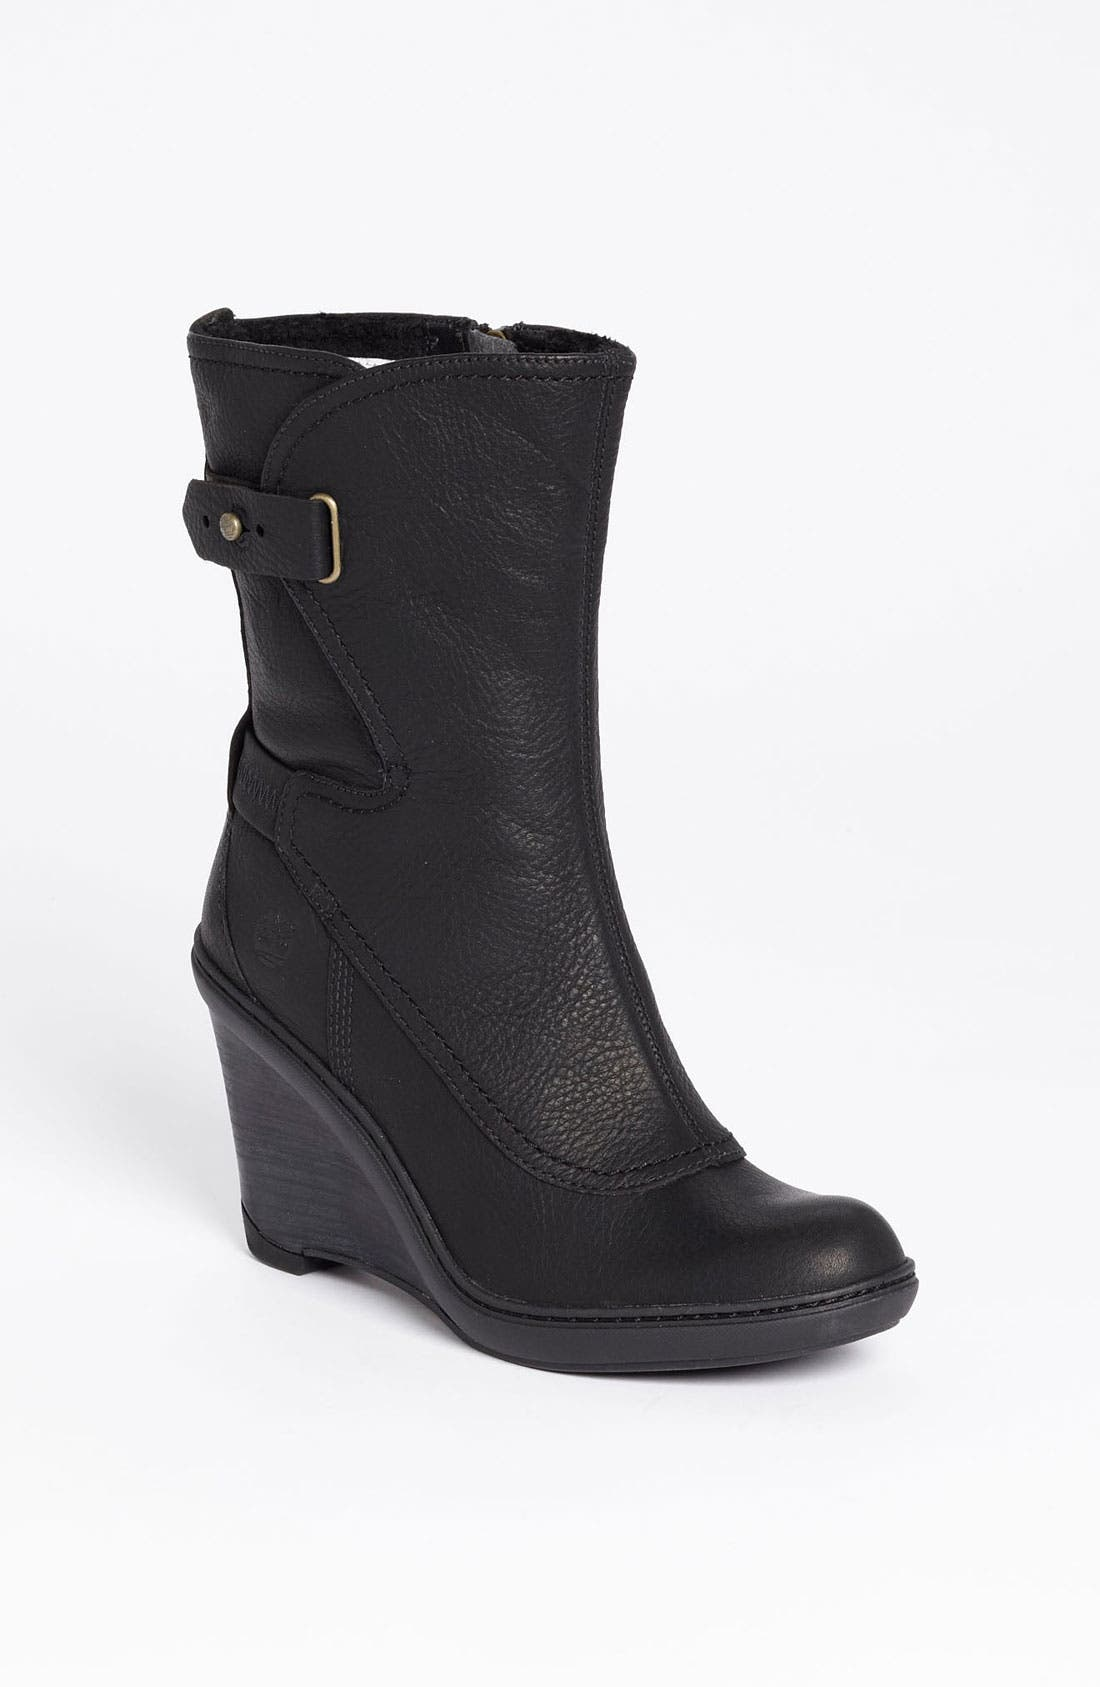 Alternate Image 1 Selected - Timberland 'Stratham Heights' Wedge Boot